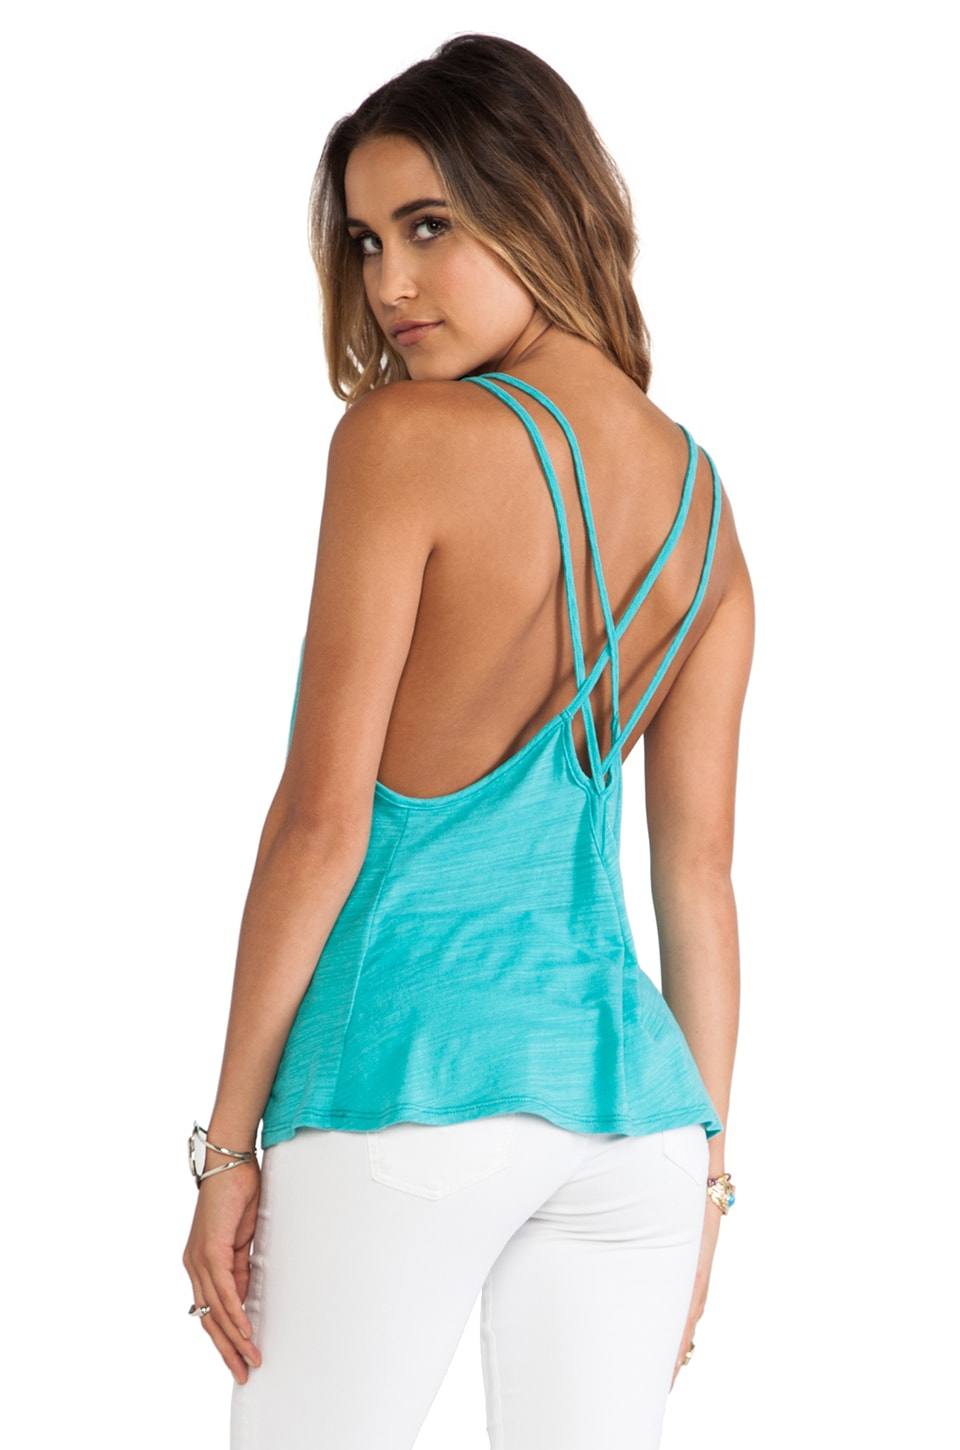 Blue Life Sunburst Cami in Mint